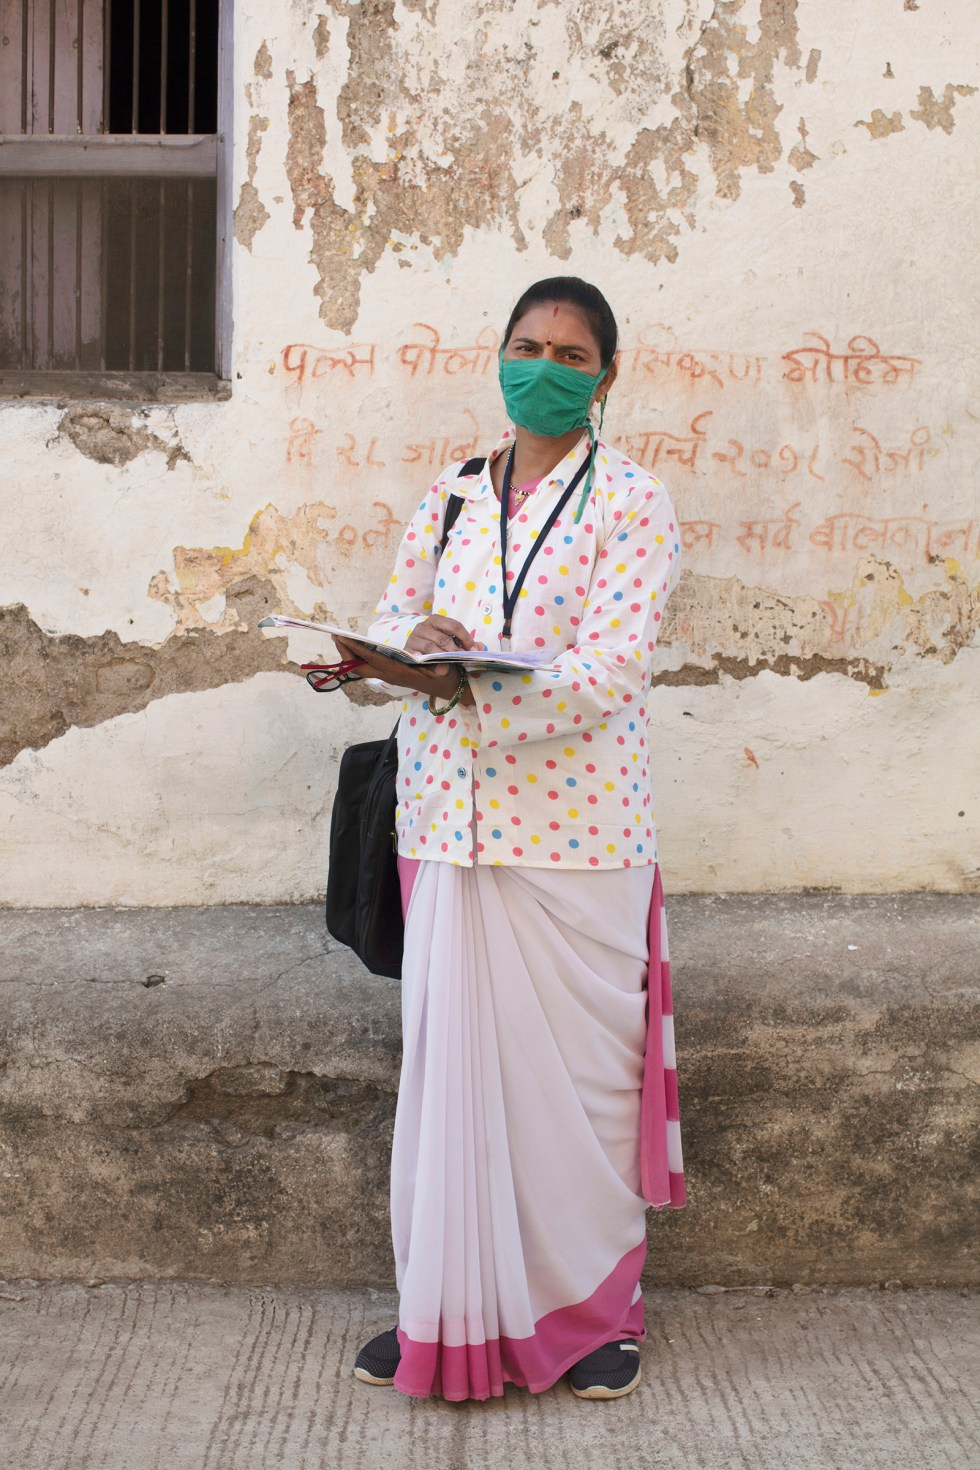 Portrait of Archana Ghugare, a community health worker, in Pavnar, Maharashtra, India, on Dec. 1, 2020. In the background is a message encouraging people to bring their children for the Polio vaccine drive.